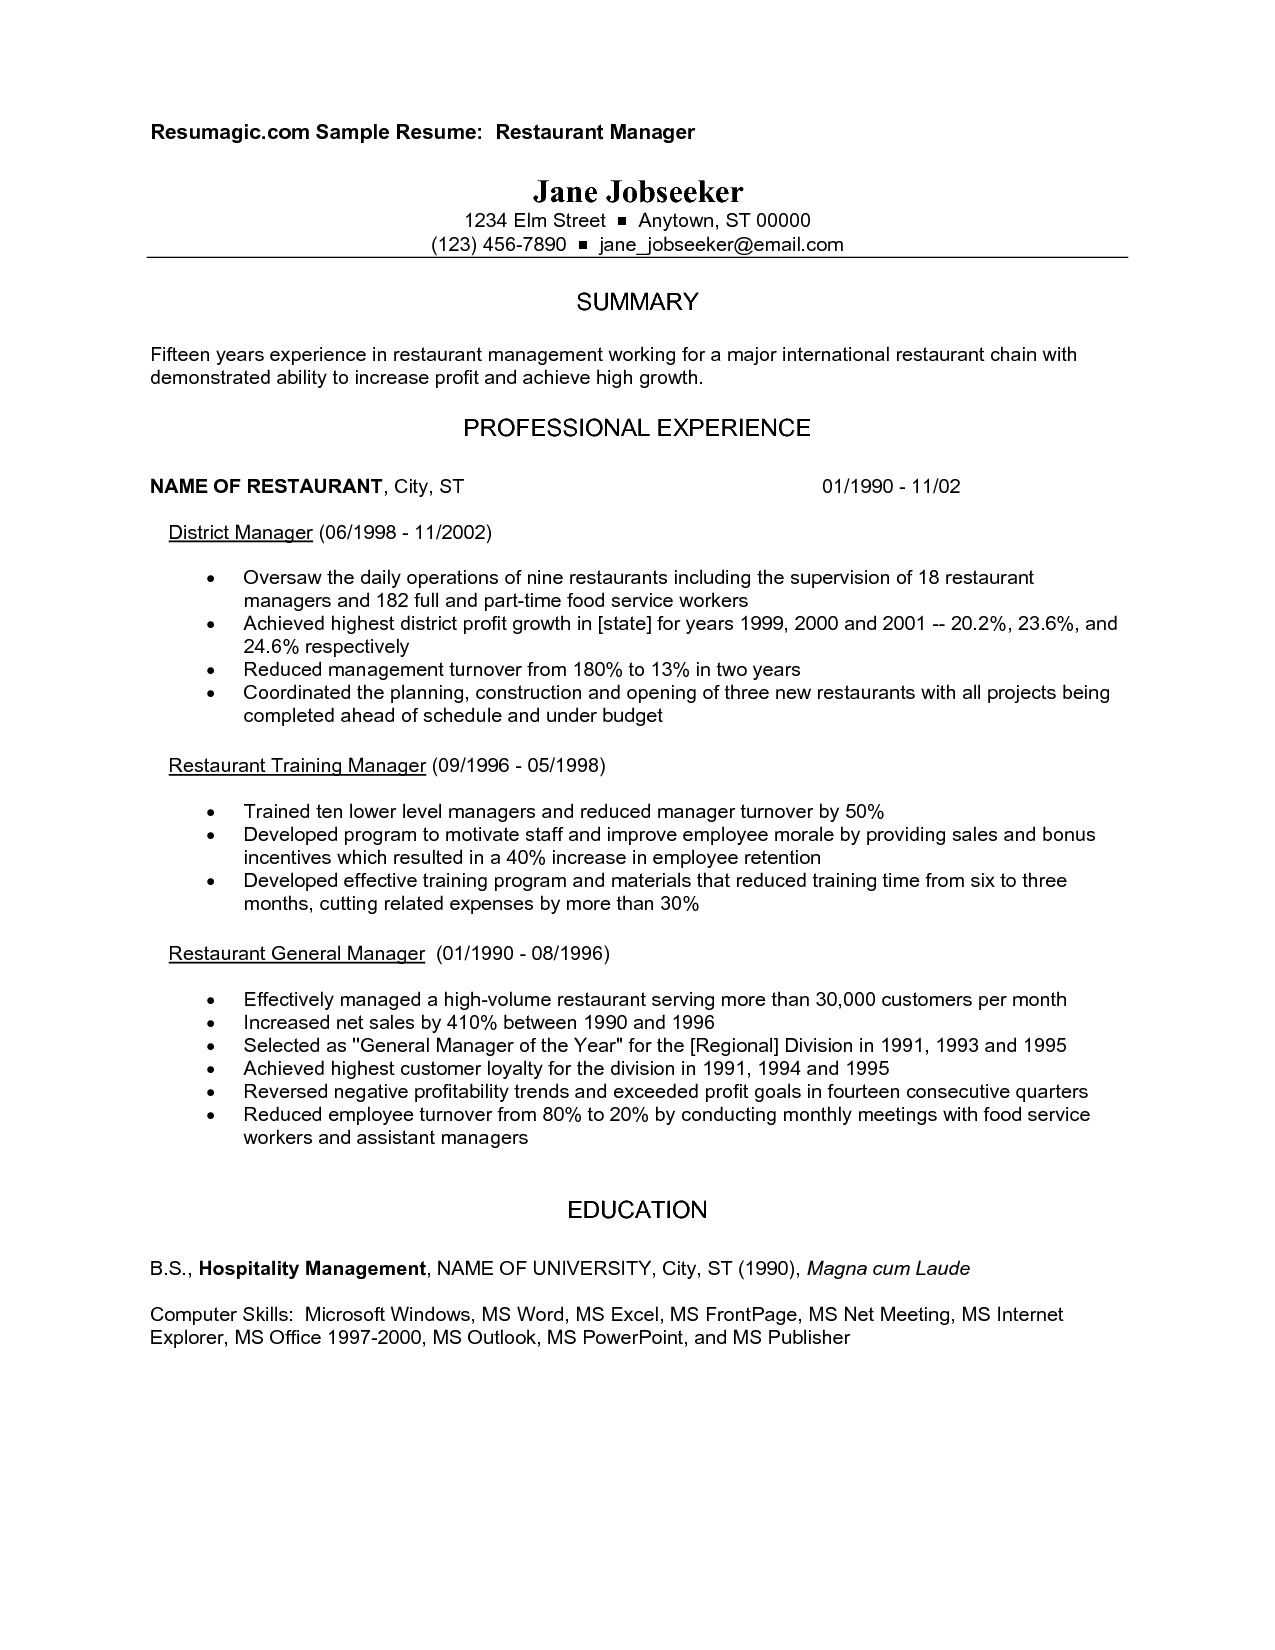 Current College Student Resume Examples Restaurant Manager Resume Example  Httpwwwresumecareer